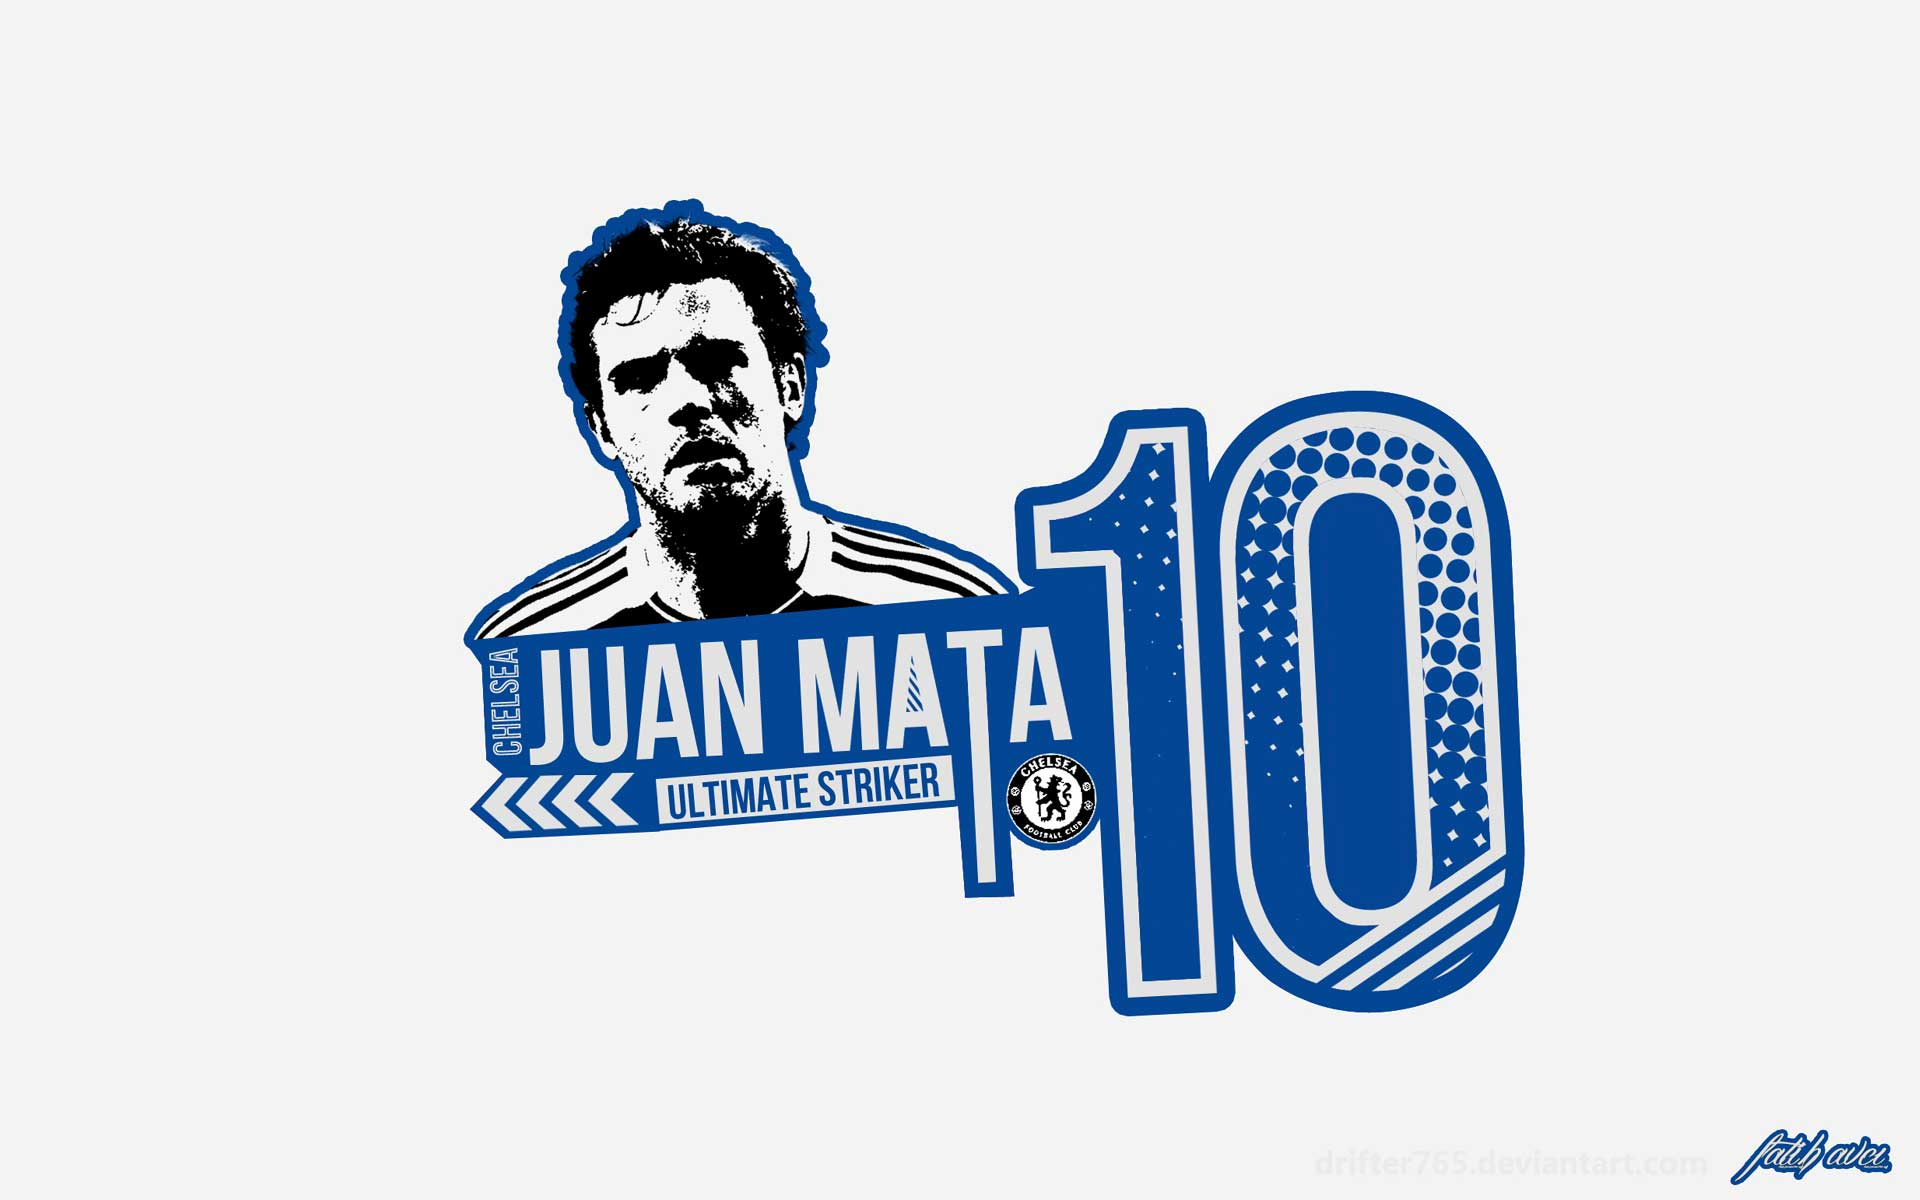 Free Wallpapers - Juan Mata wallpaper